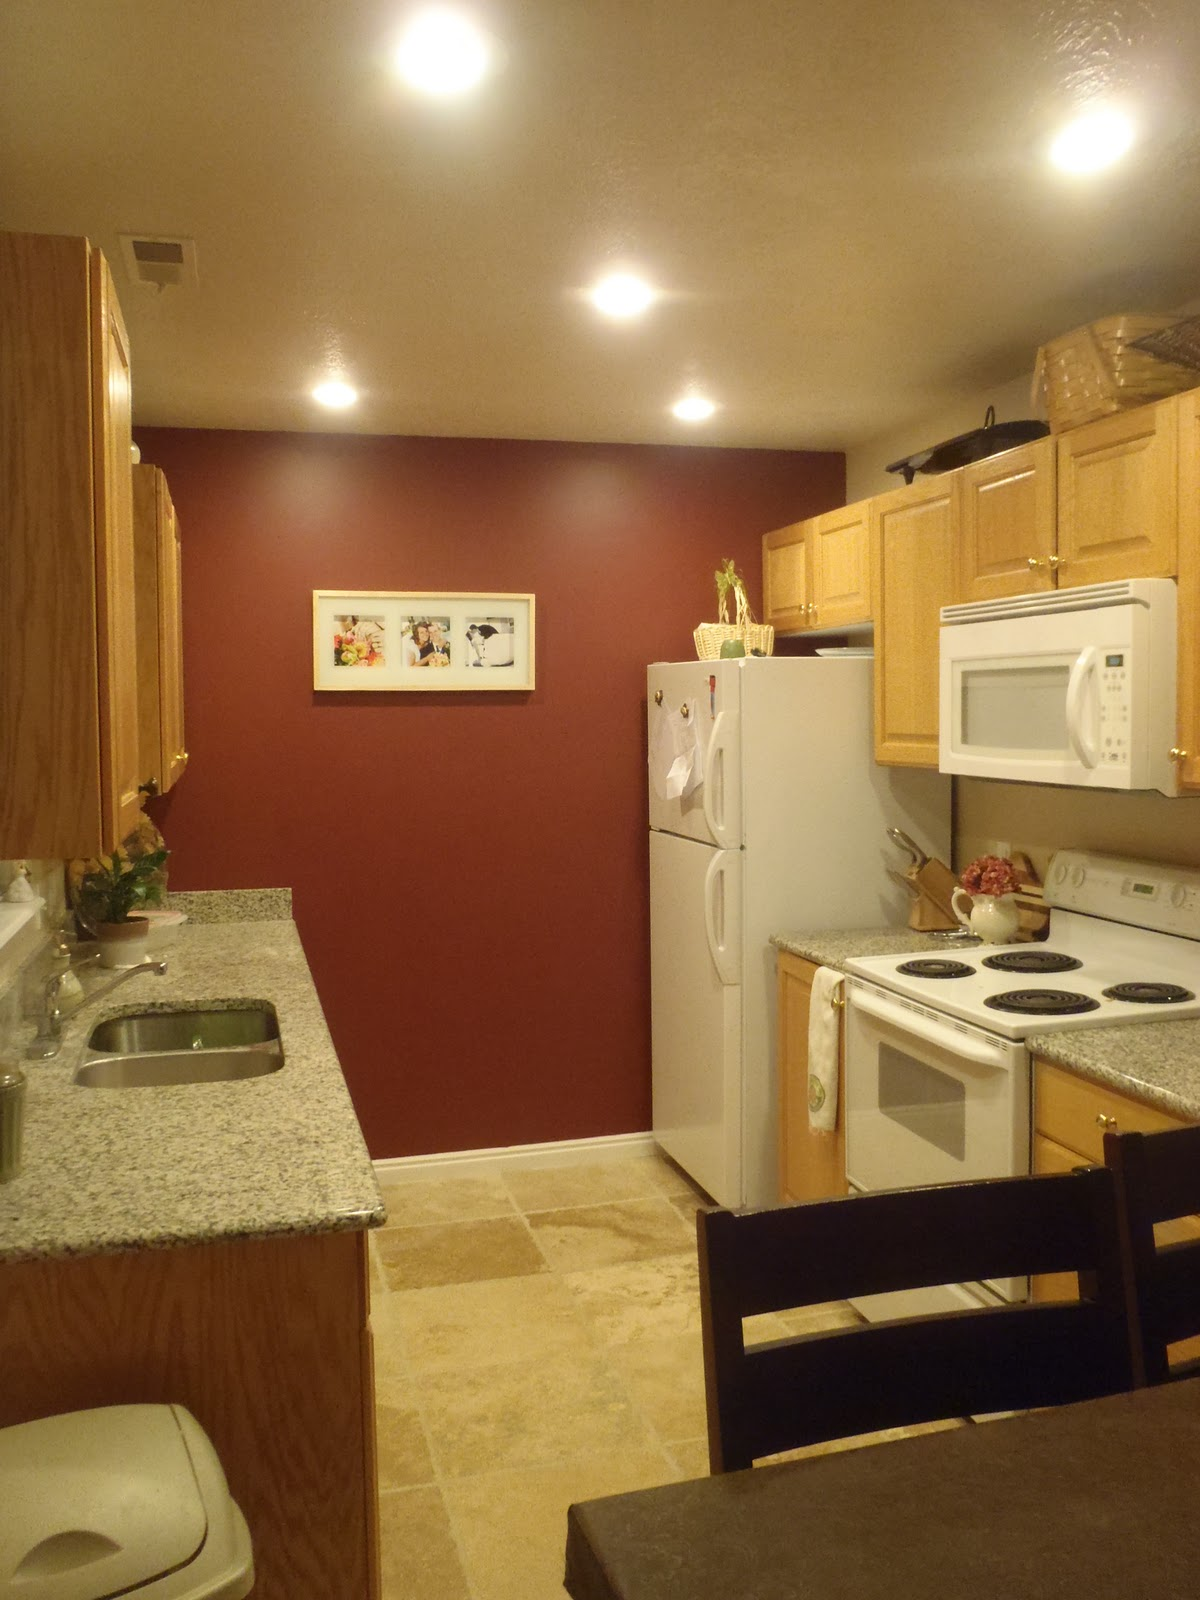 Ideal Kitchen Lighting Layout. Kitchen Lighting Layout I - Prashanti.co DO59